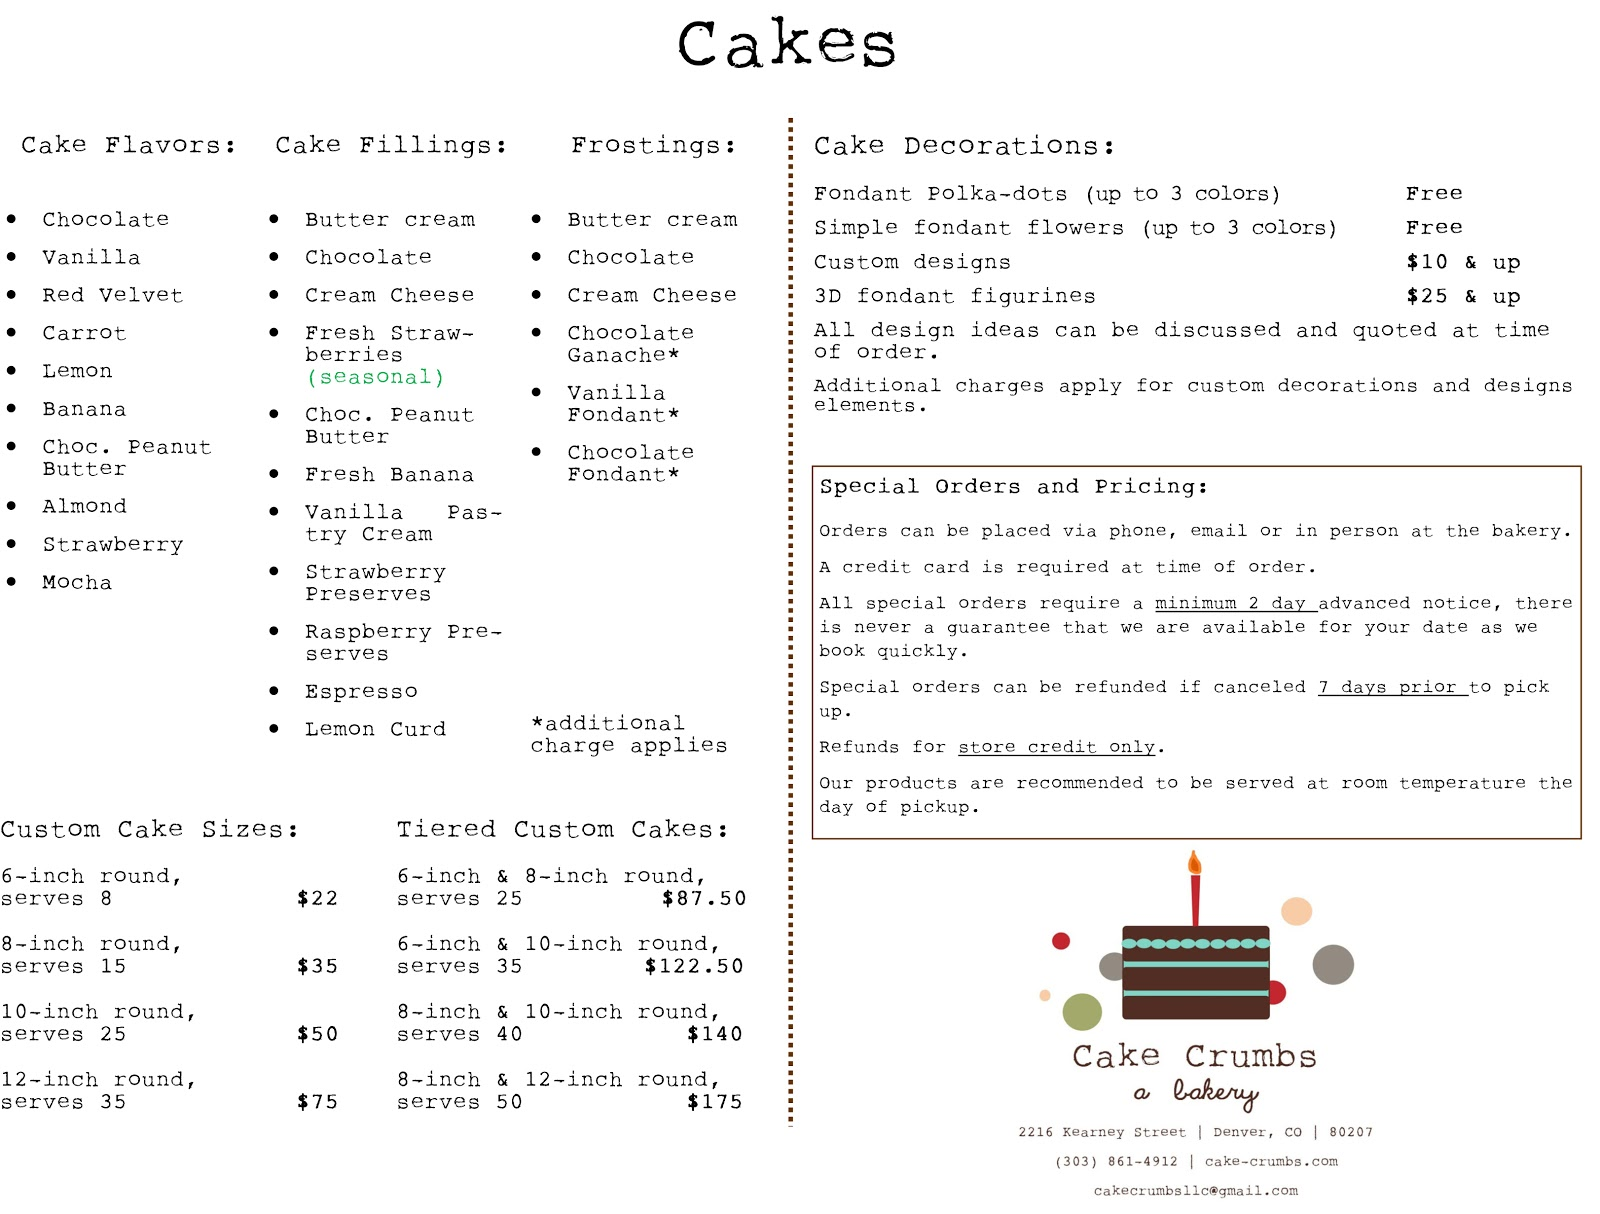 Cake Crumbs Bakery Cake Crumbs Cake Menu